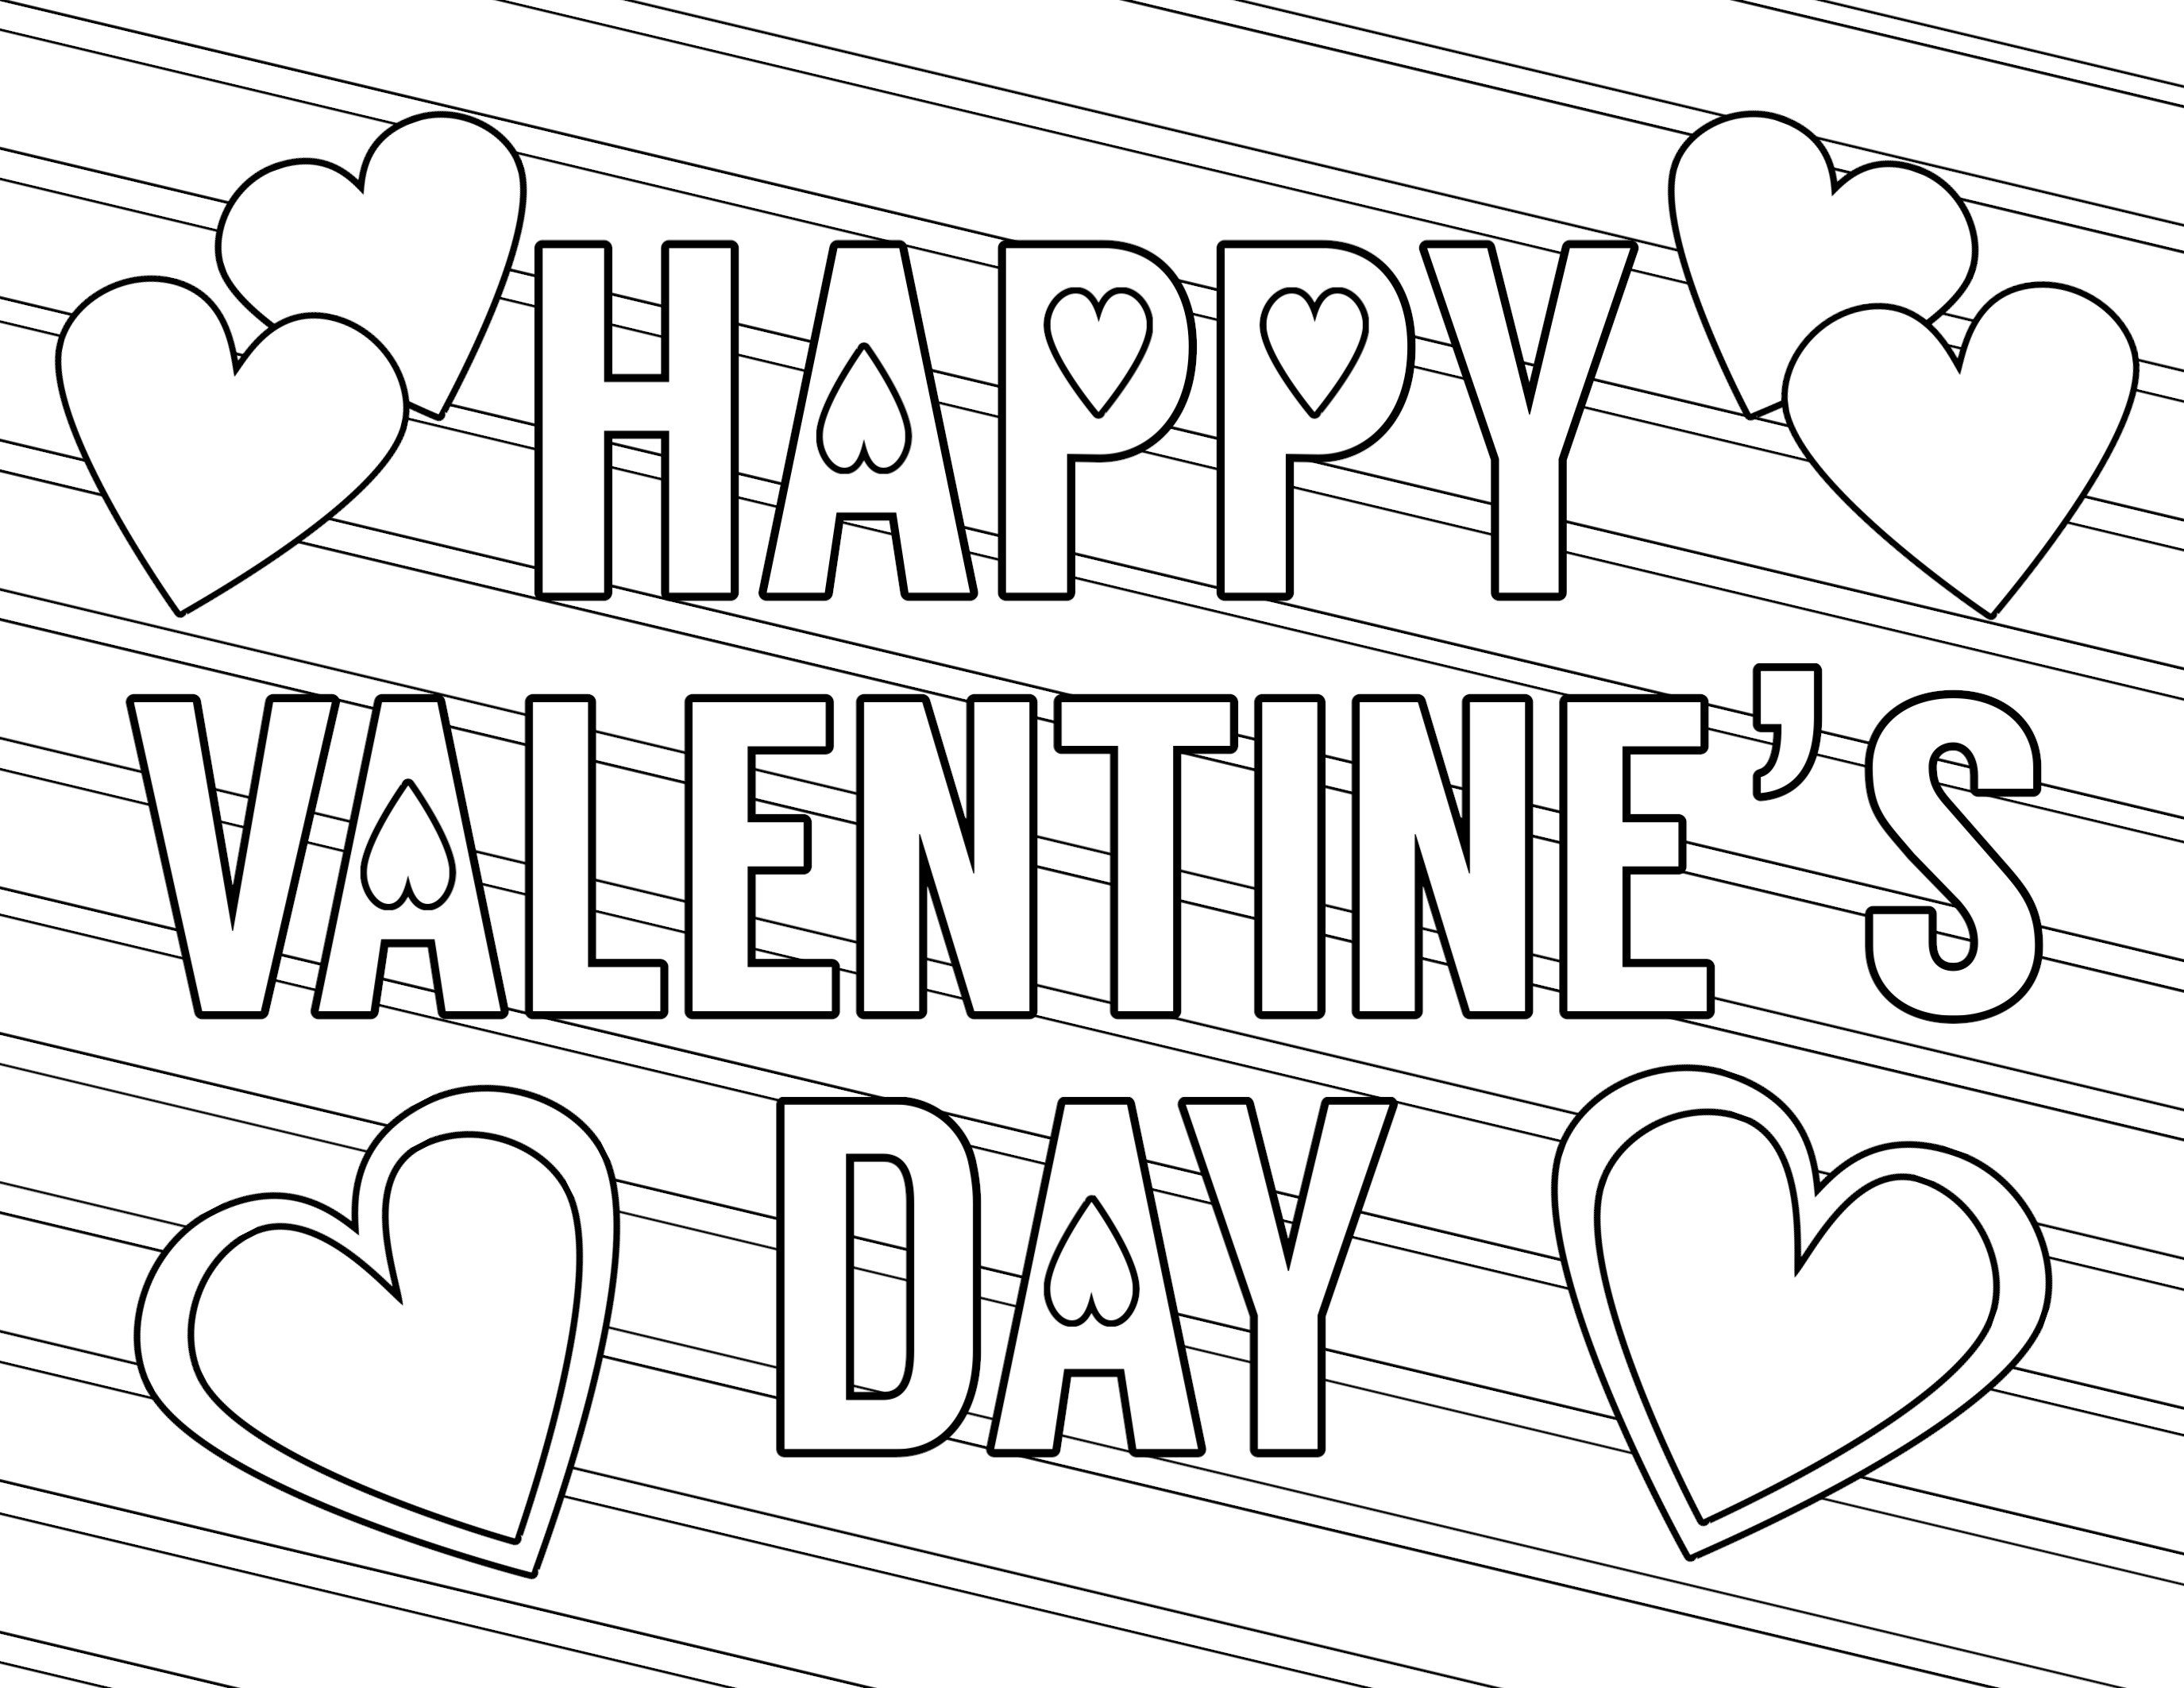 Coloring Ideas : Stunning Free Valentines Day Coloring Pages Page - Free Printable Heart Designs